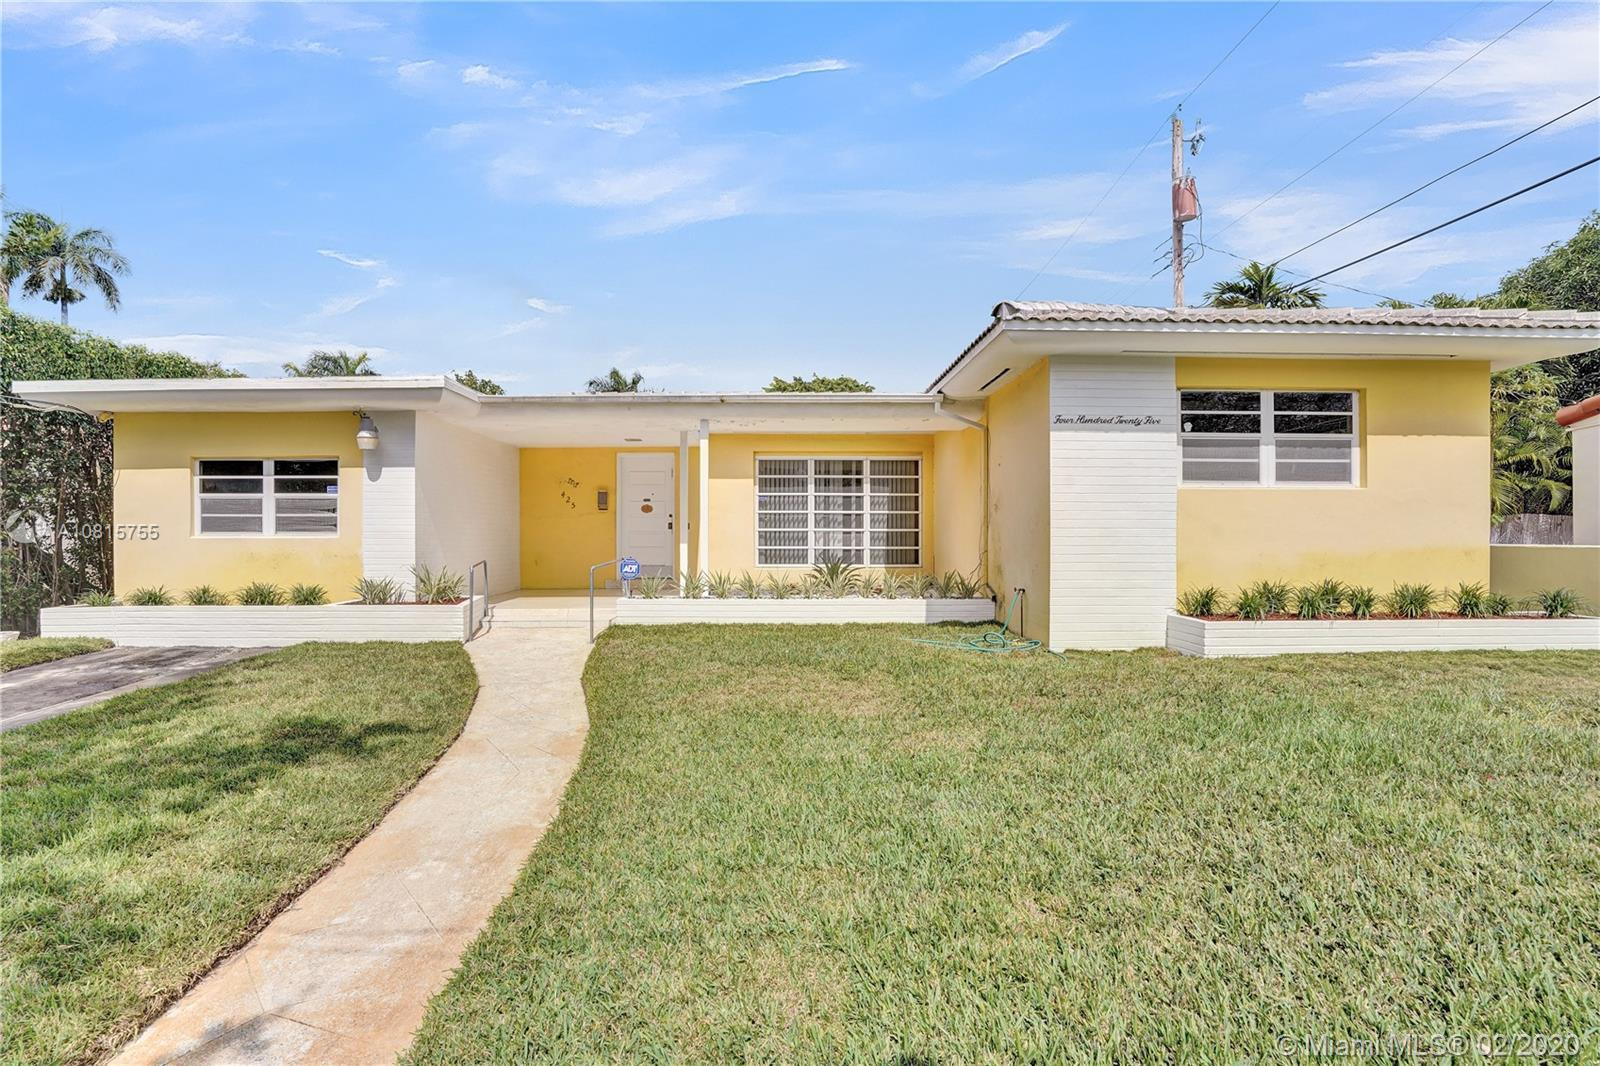 Location is key! ONLY house on the block in this desirable neighborhood with 5 bedroom/4 bathroom 30